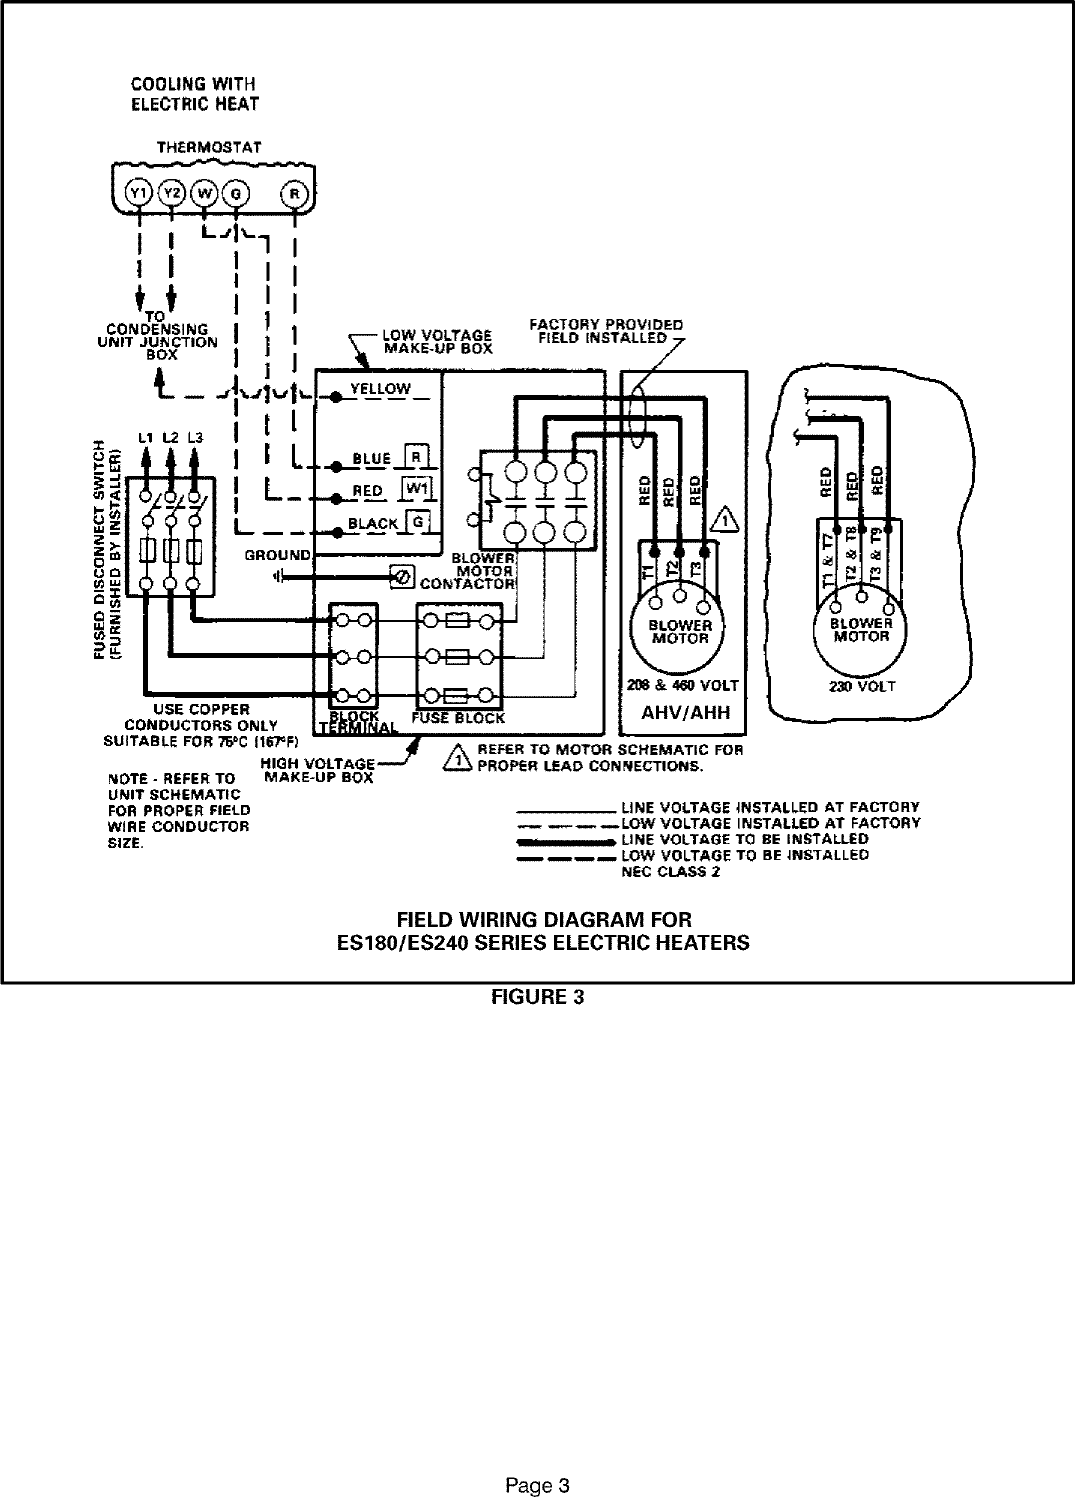 Troubleshooting House Wiring Problem